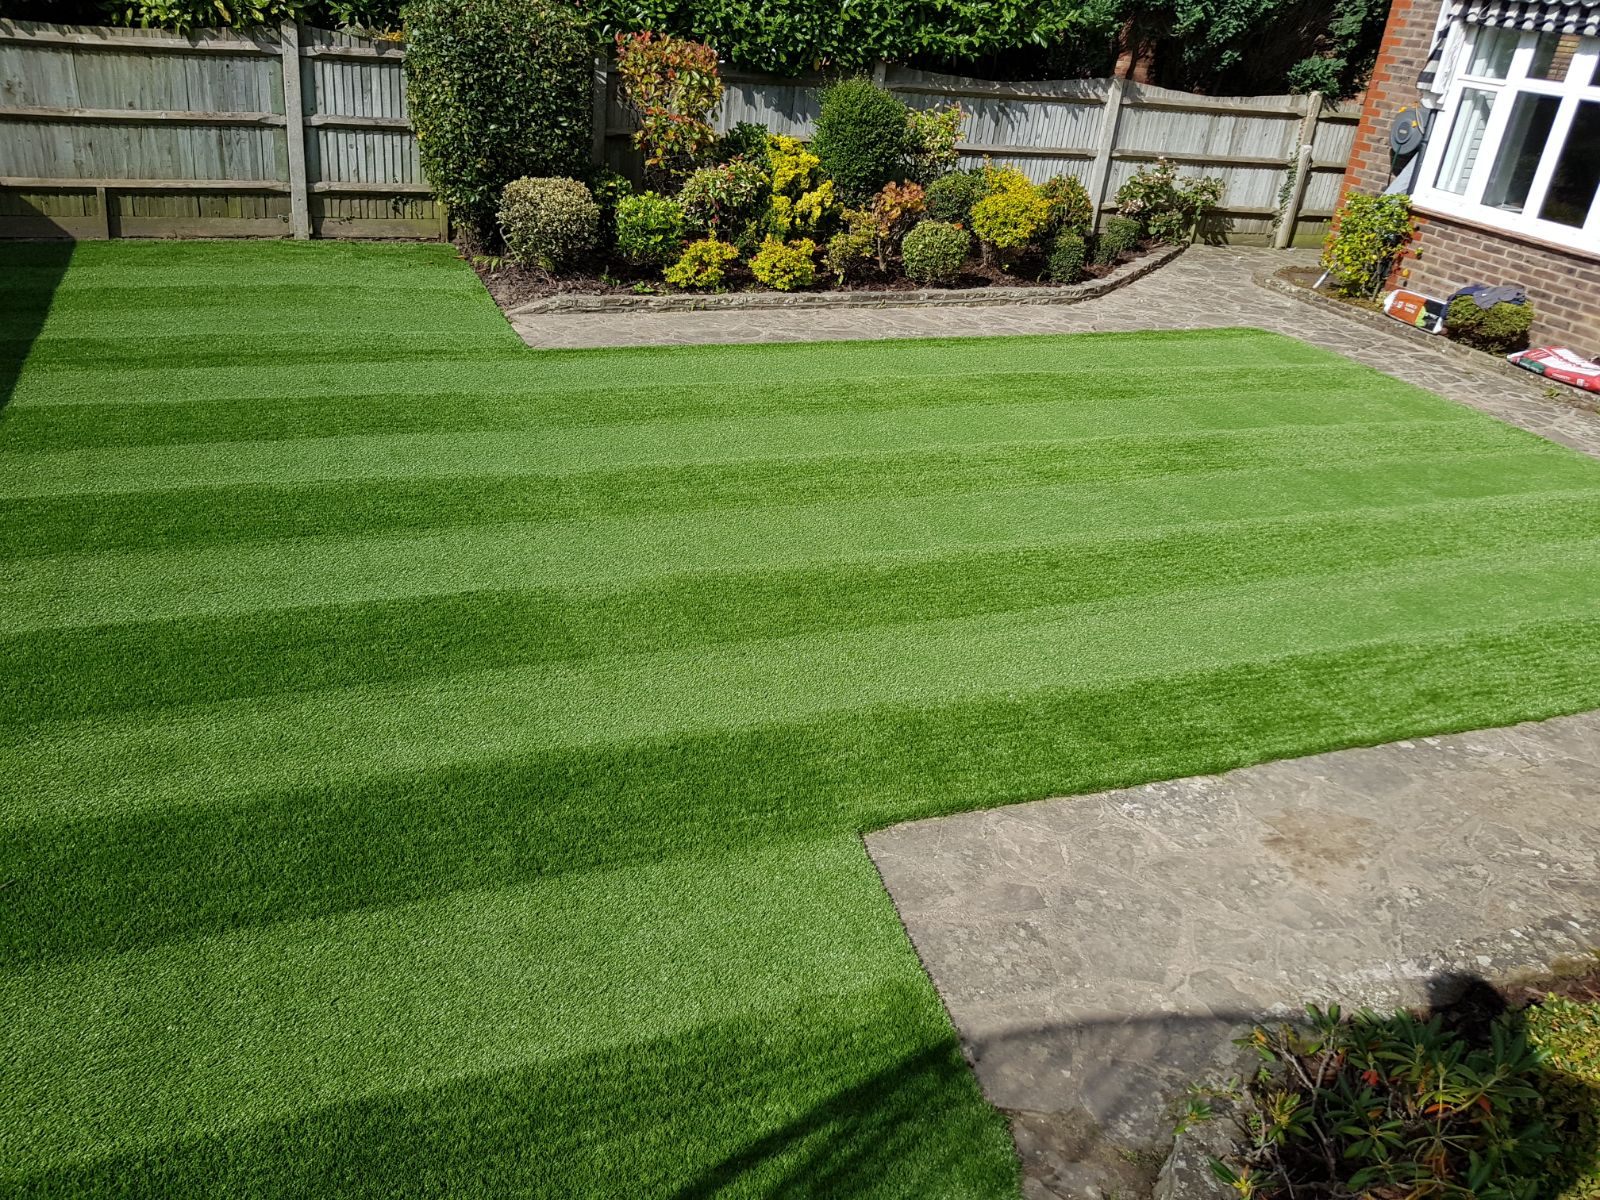 garden with beautiful artificial grass